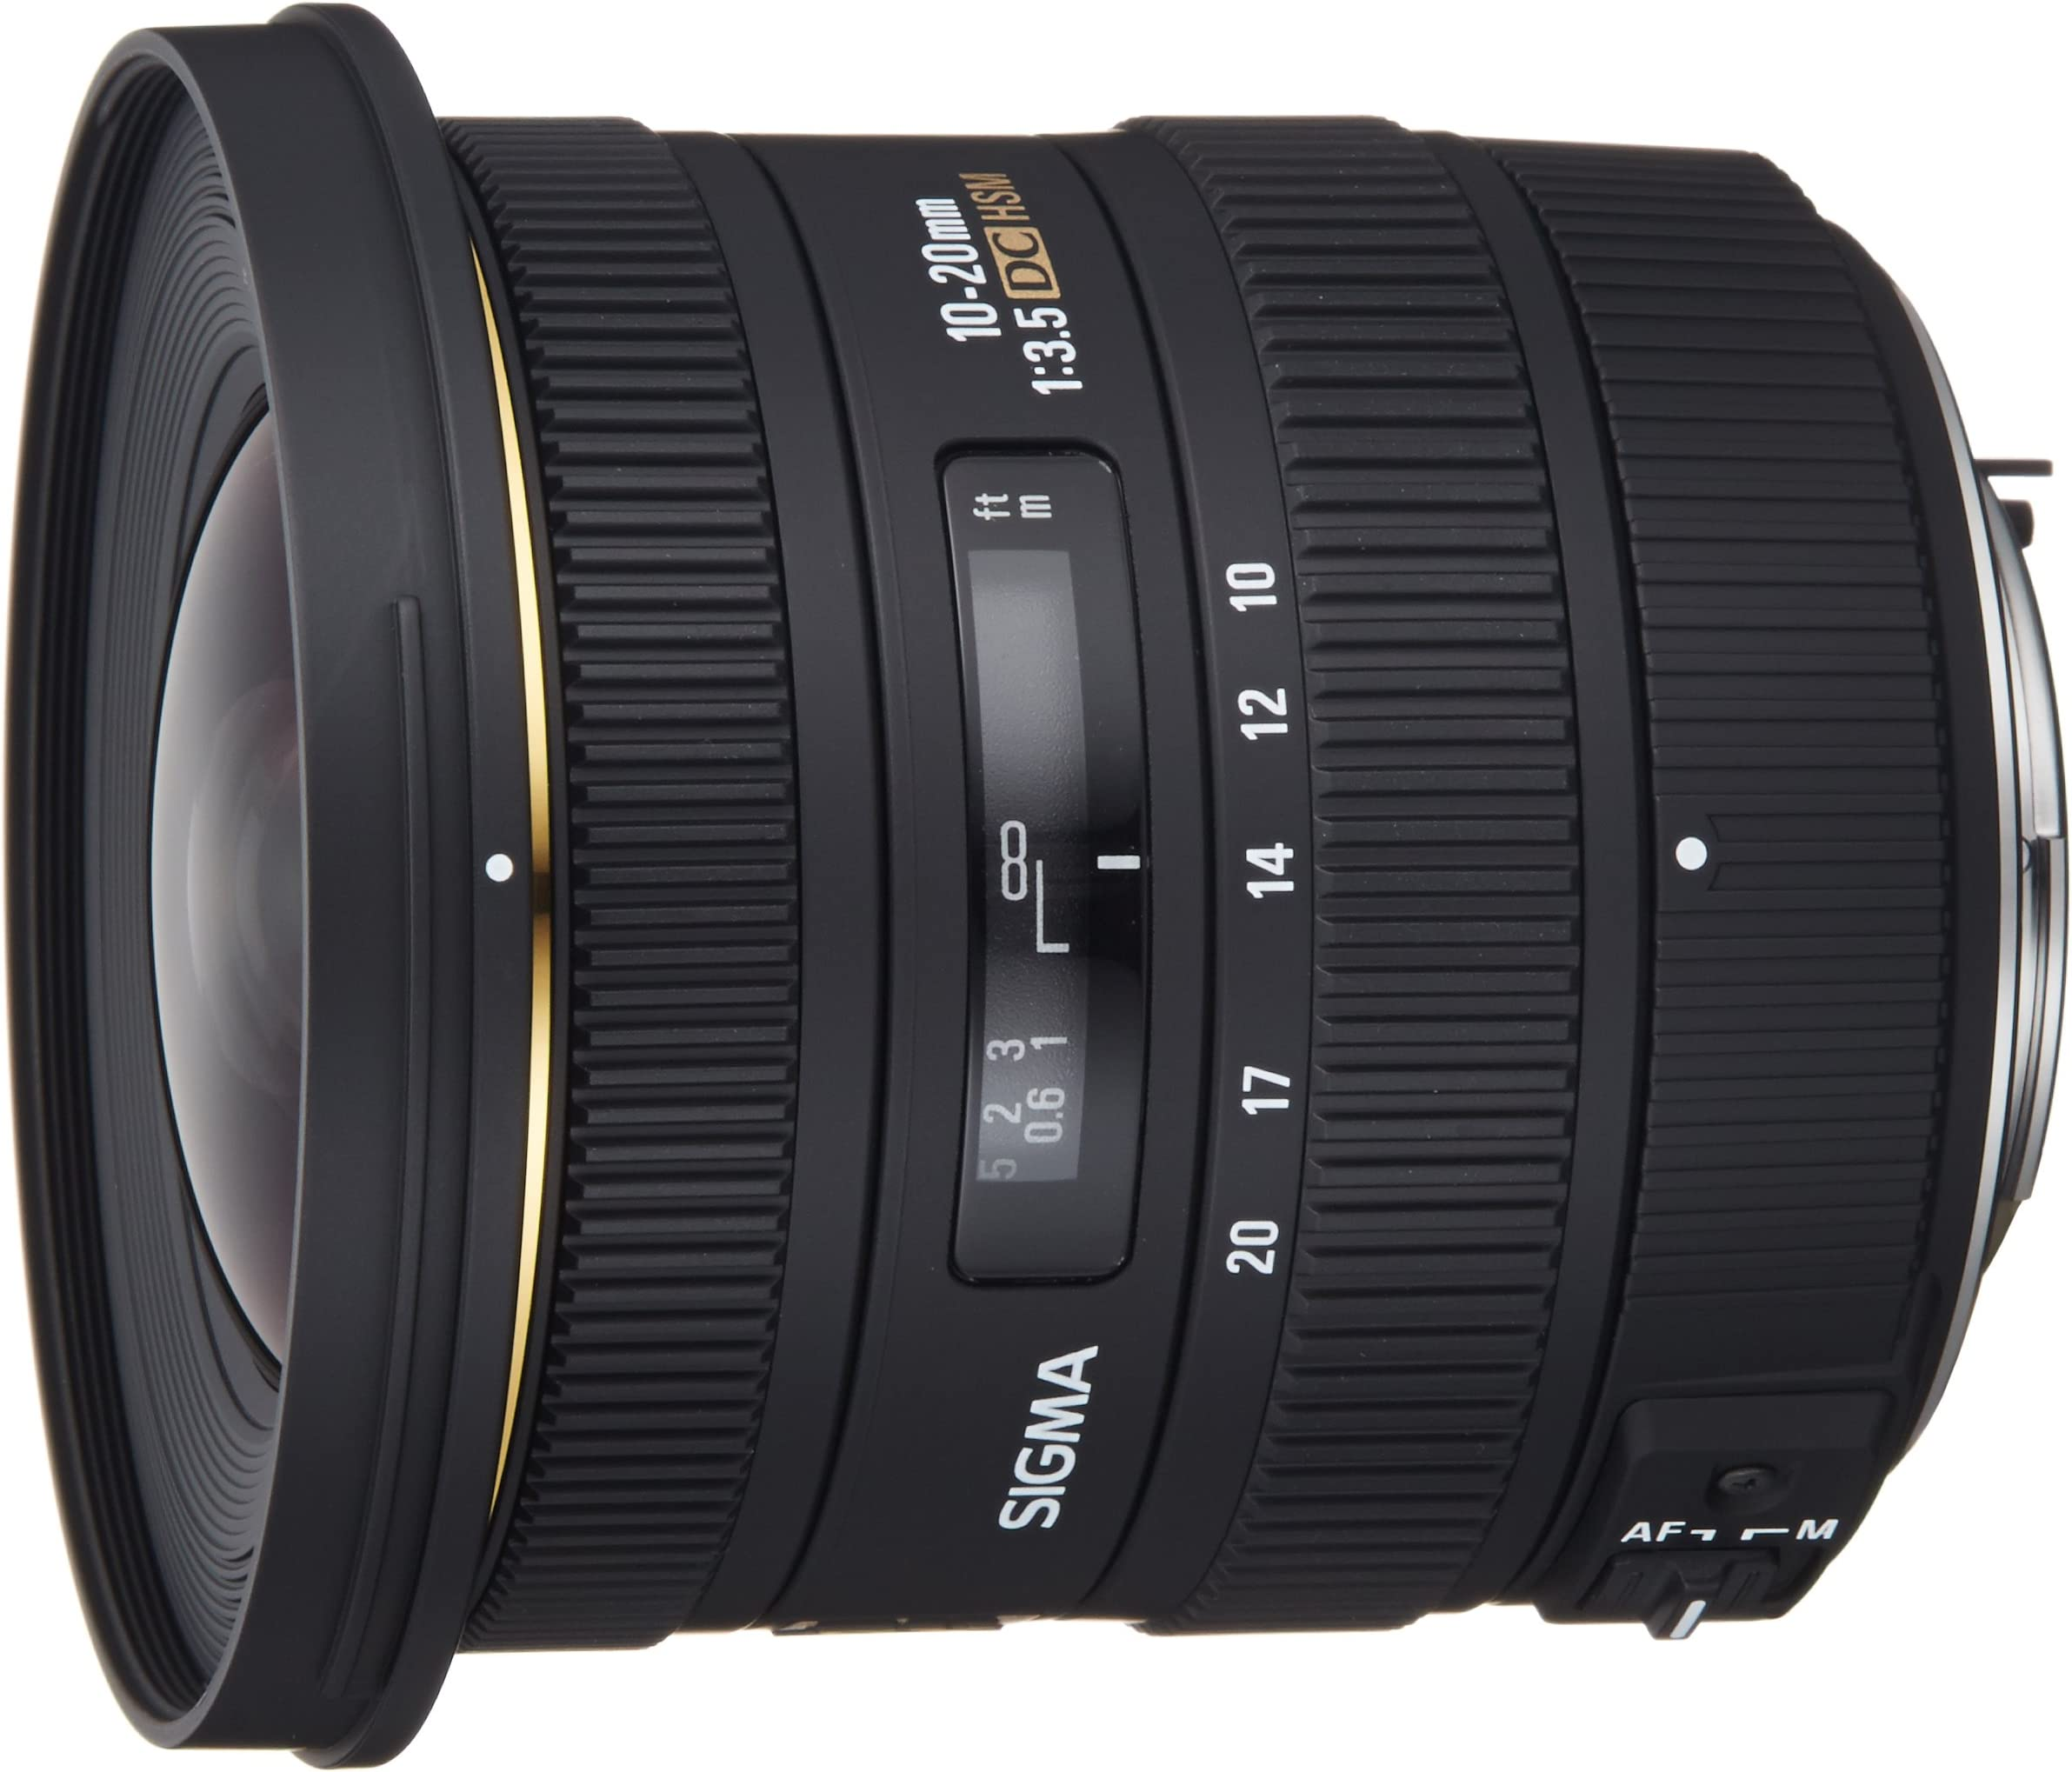 Sigma 10-20mm f/3.5 EX DC HSM ELD SLD Aspherical Super Wide Angle Lens for Pentax Digital SLR Cameras